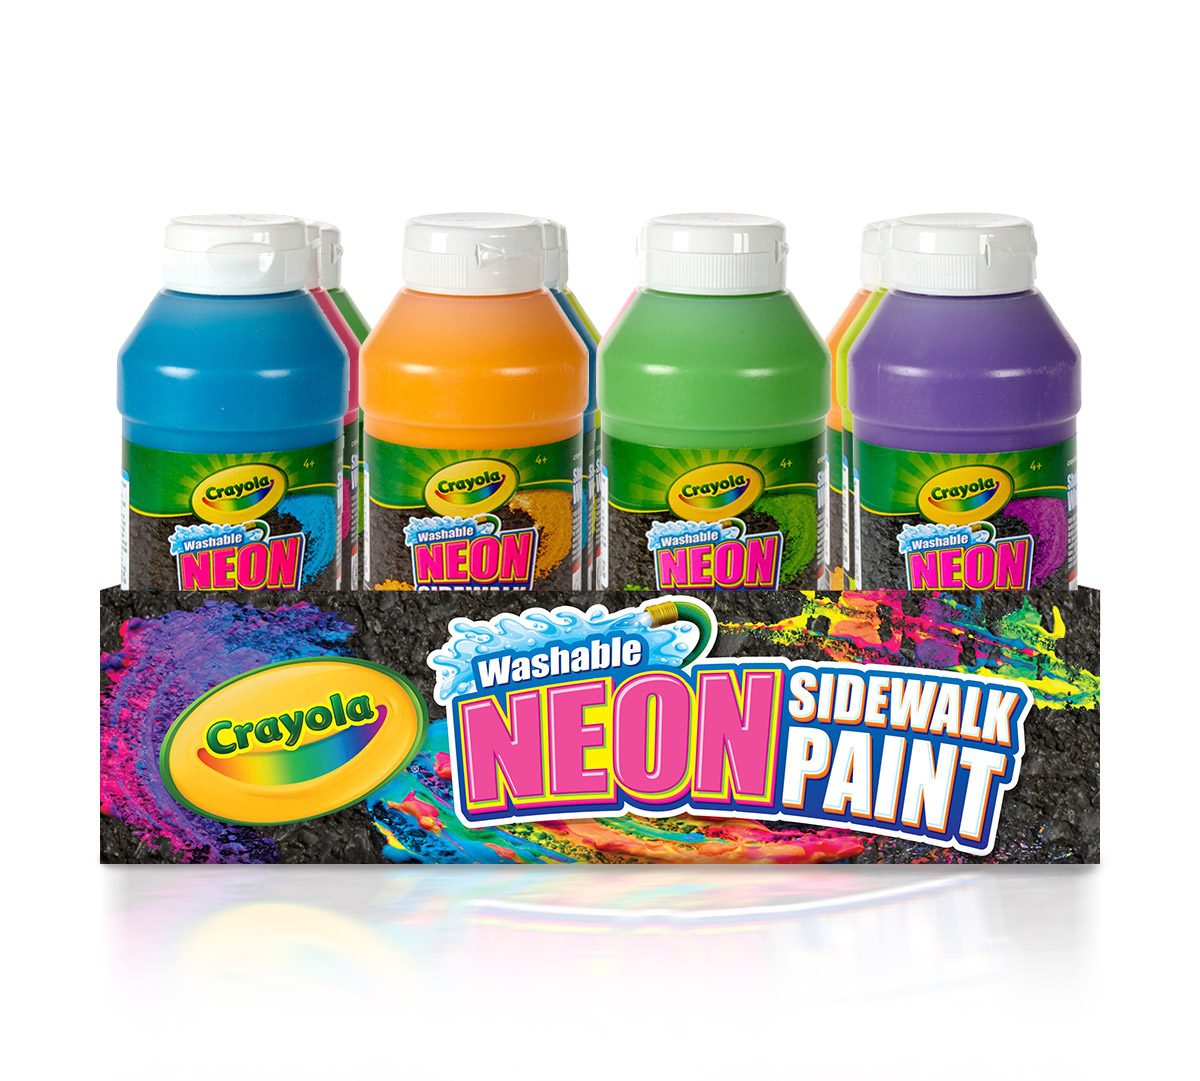 12 Ct Washable Sidewalk Neon Paint Crayola